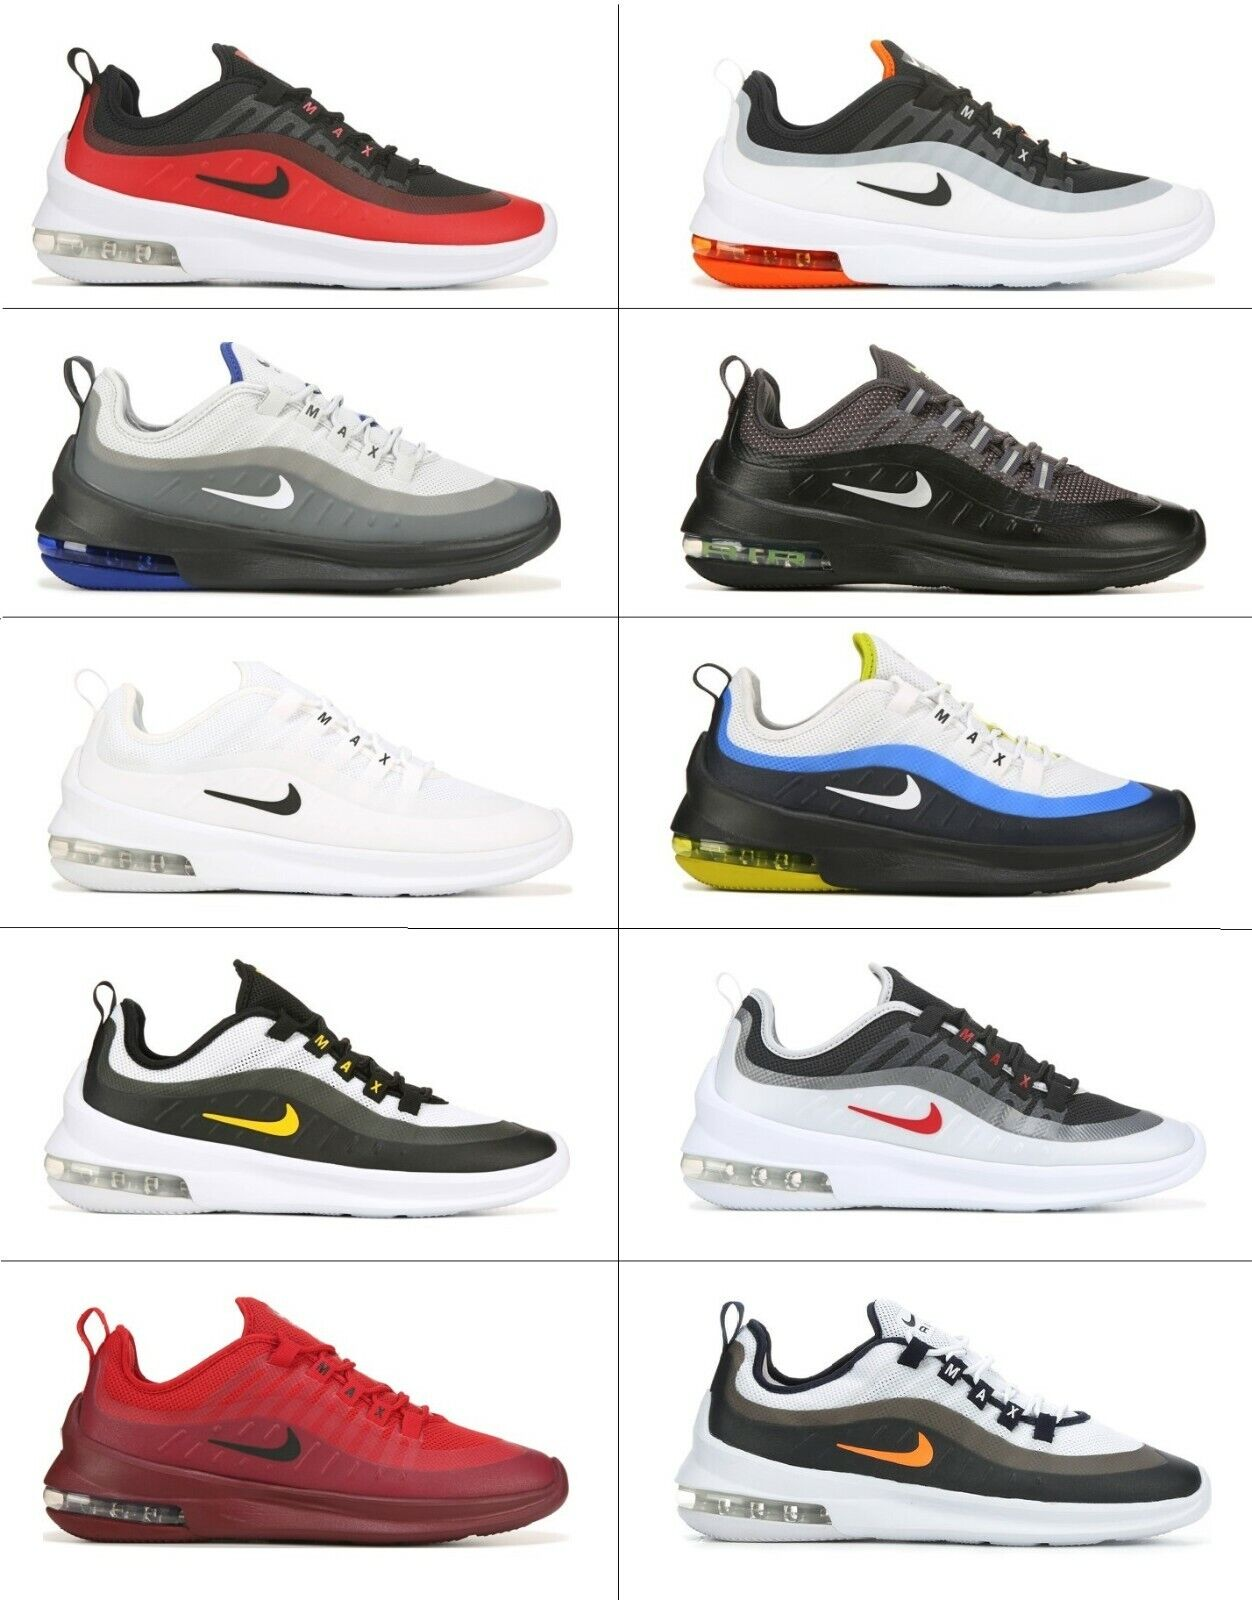 Nike Air Max AXIS Low Mens Running Shoes Sneakers Cross Trainers Gym NIB